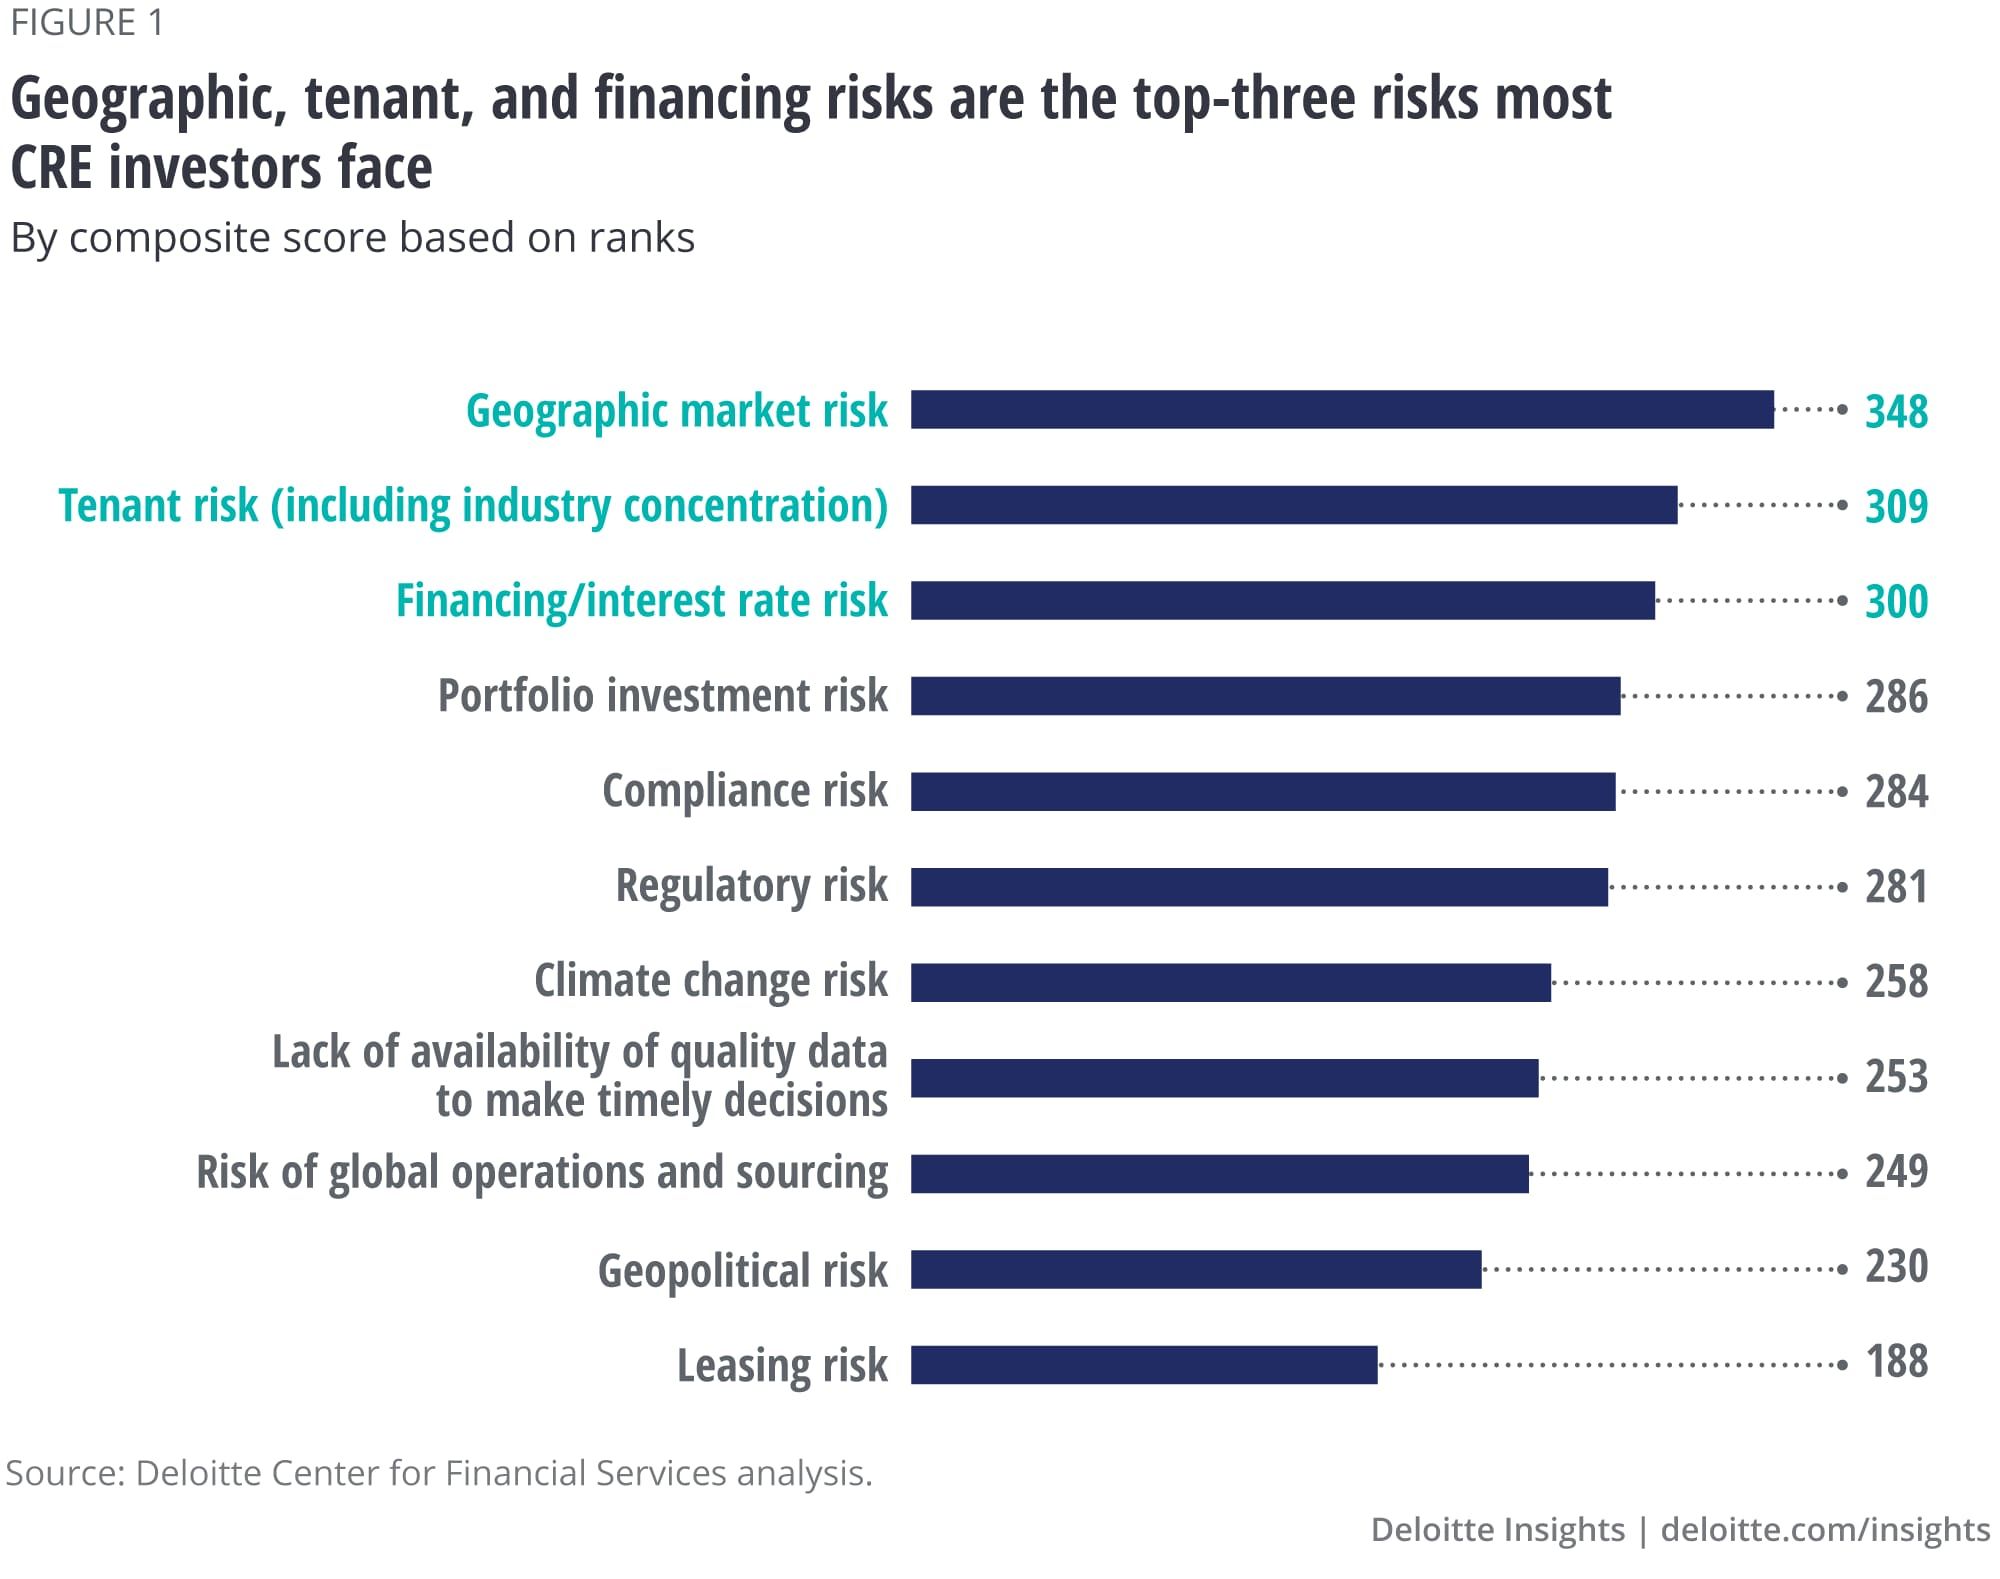 Geographic, tenant, and financing risks are the top-three risks most CRE investors face